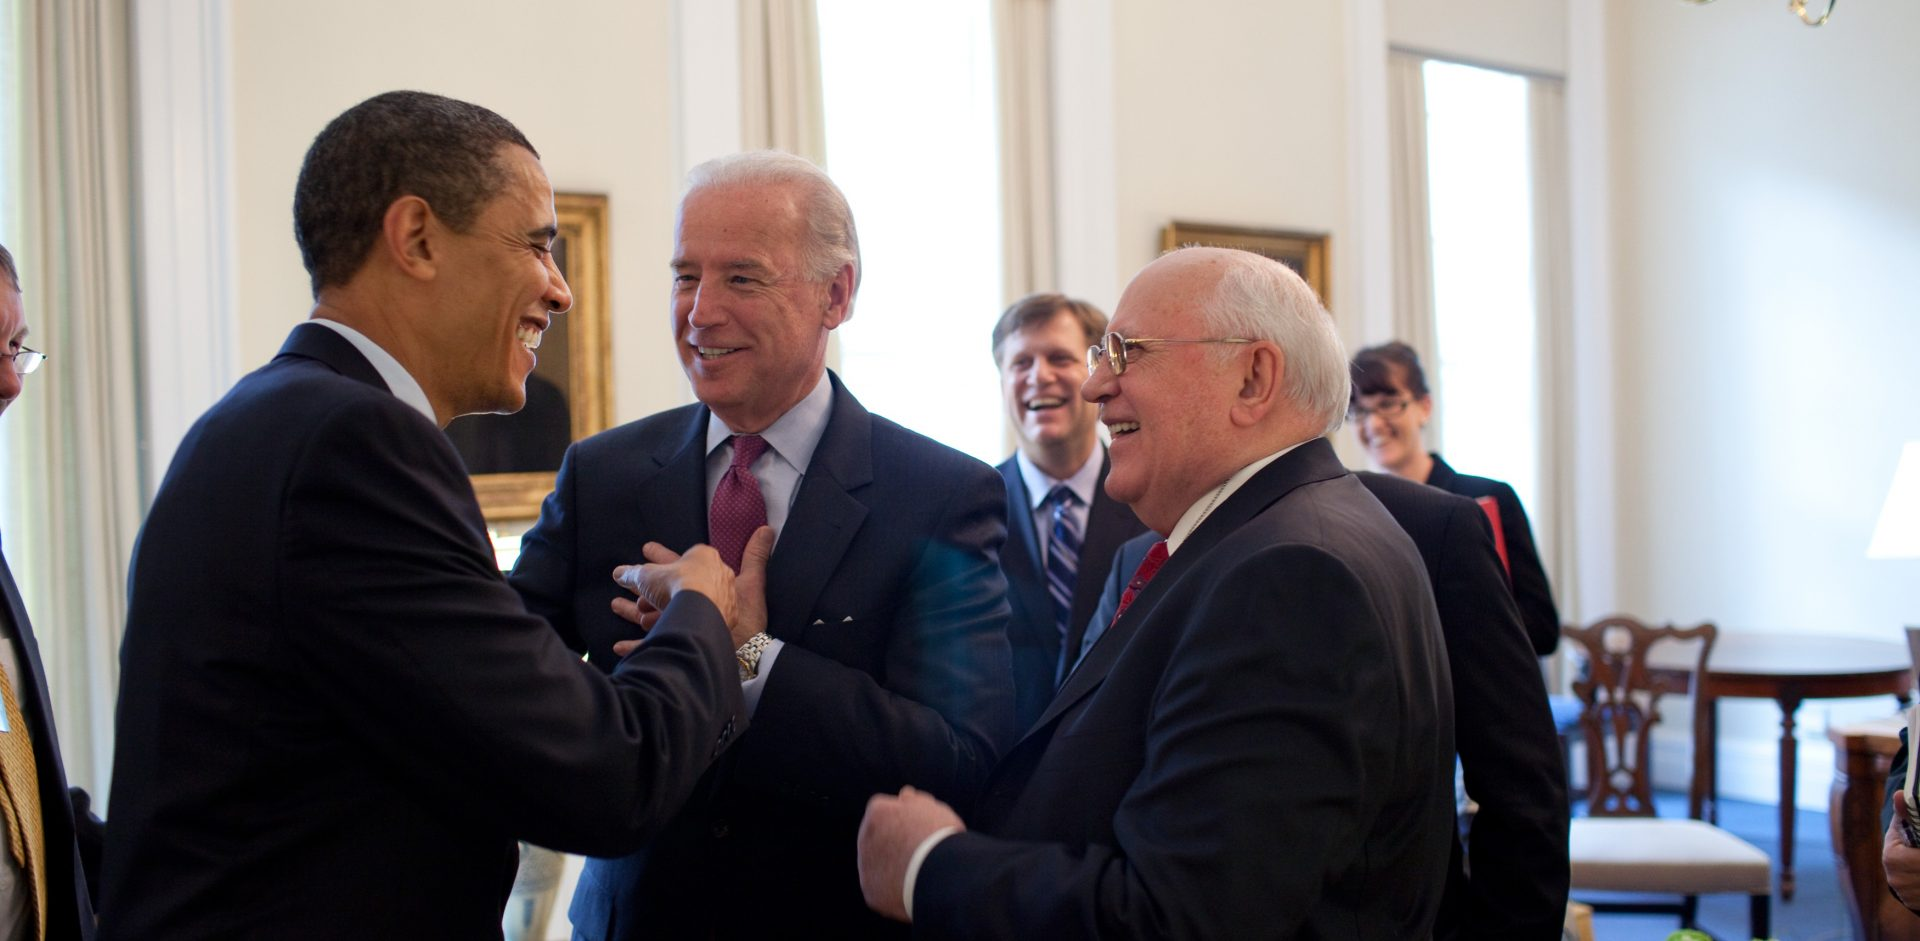 President Barack Obama drops by VP Joe Biden's meeting with former Soviet Union President Mikhail Gorbachev in the Vice President's Office, West Wing 3/20/09. Official White House Photo by Pete Souza